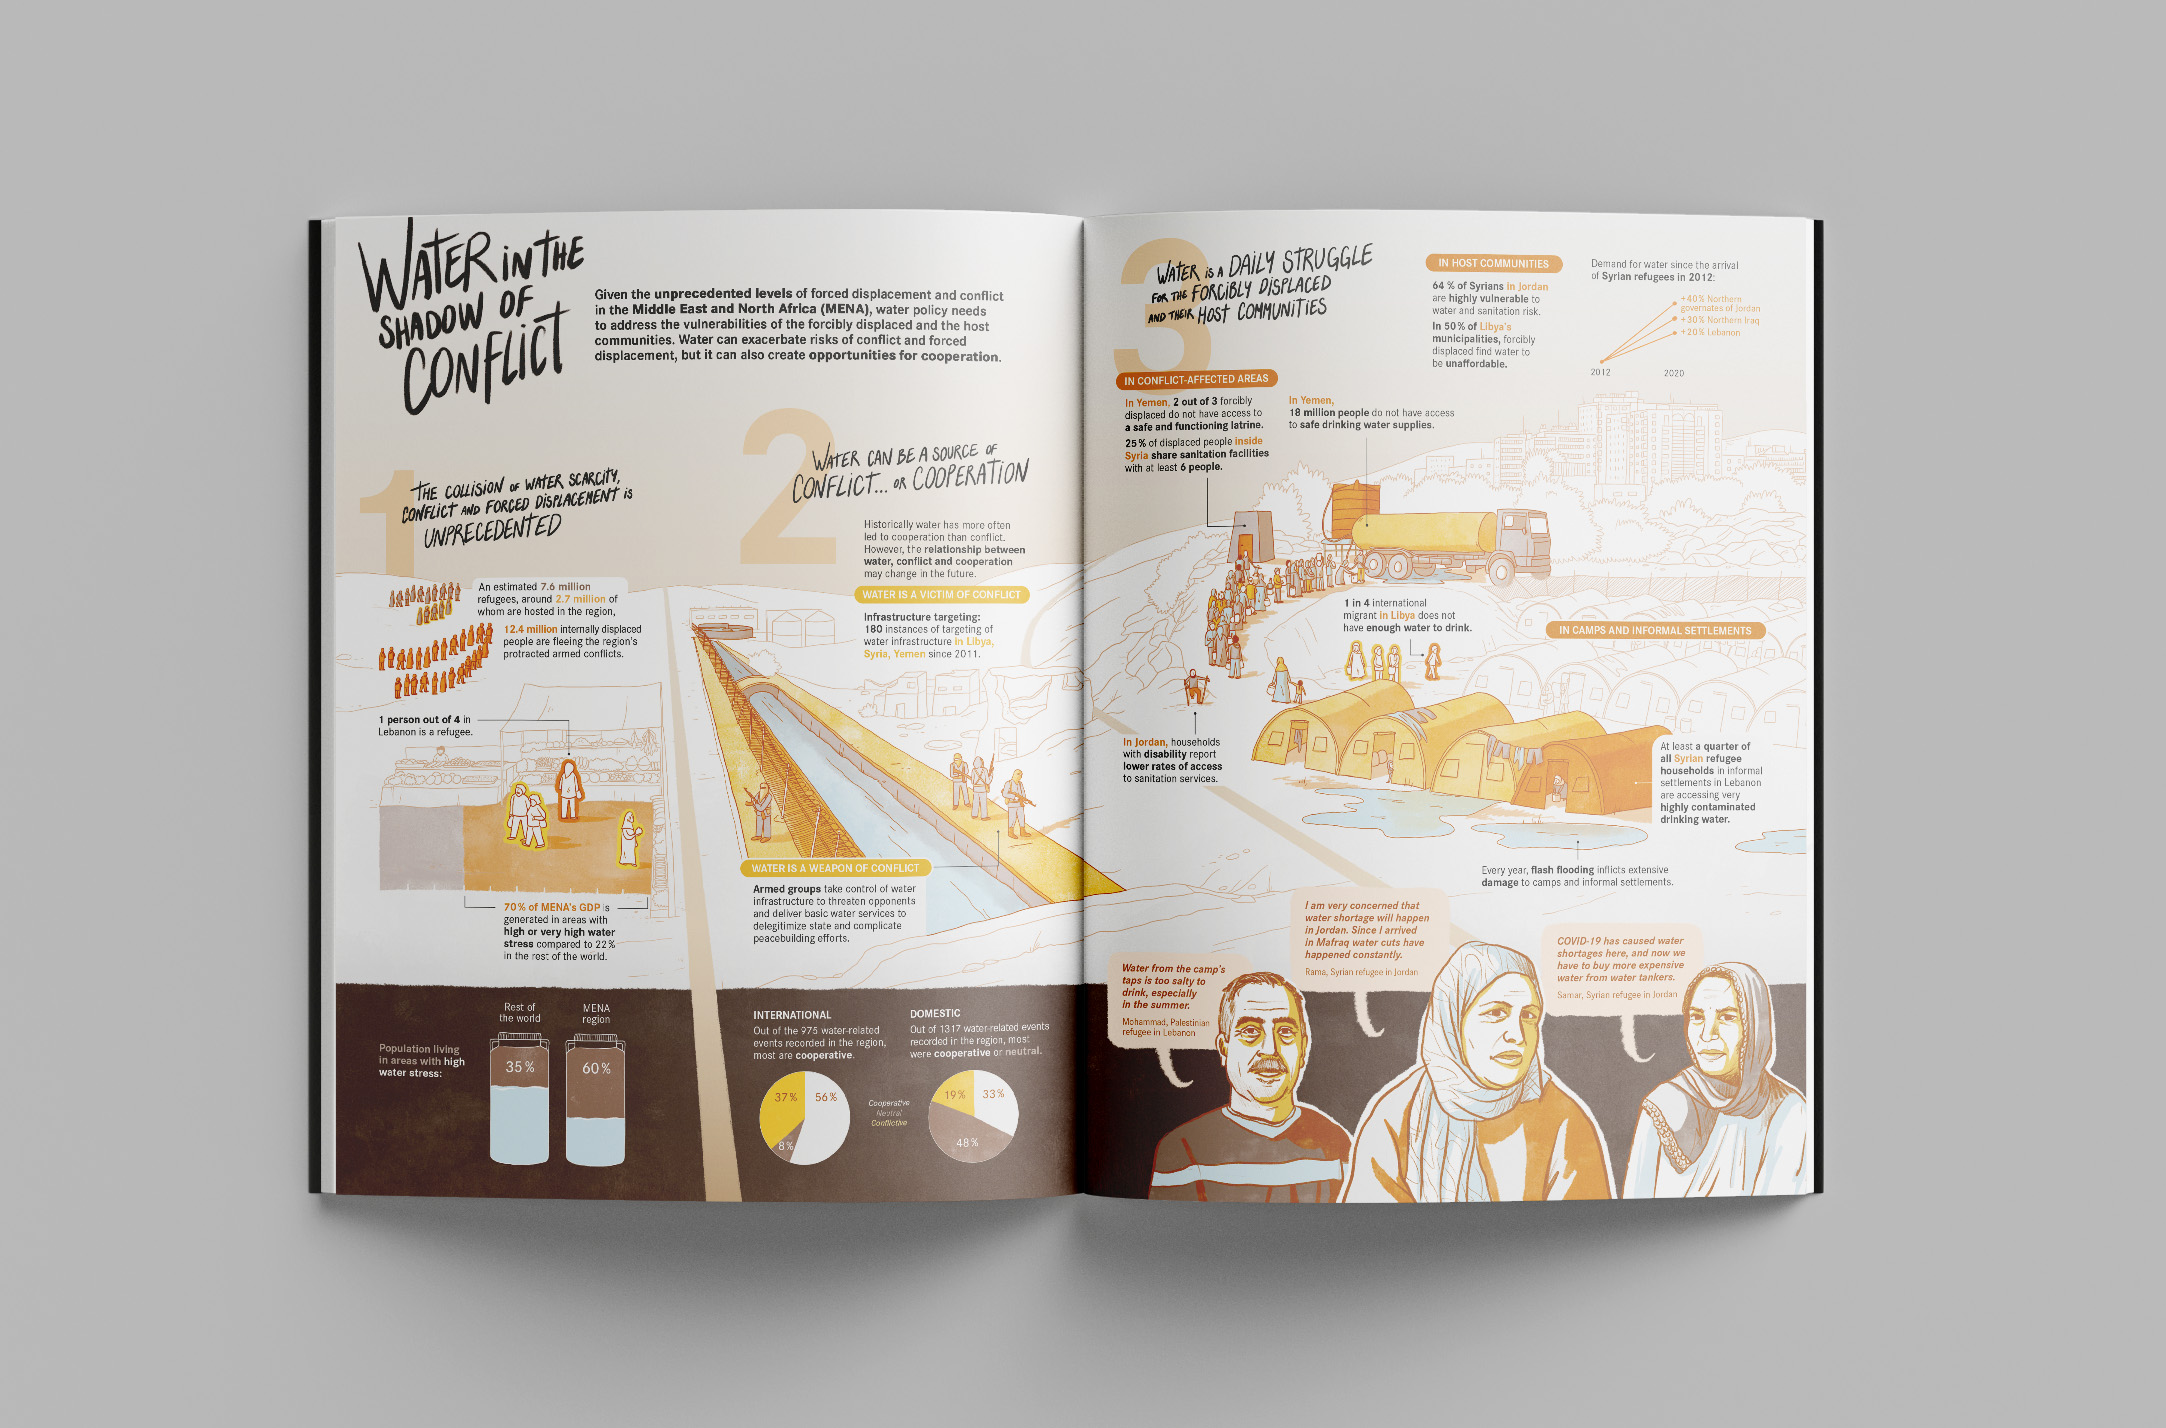 View of the full infographic in an open magazine